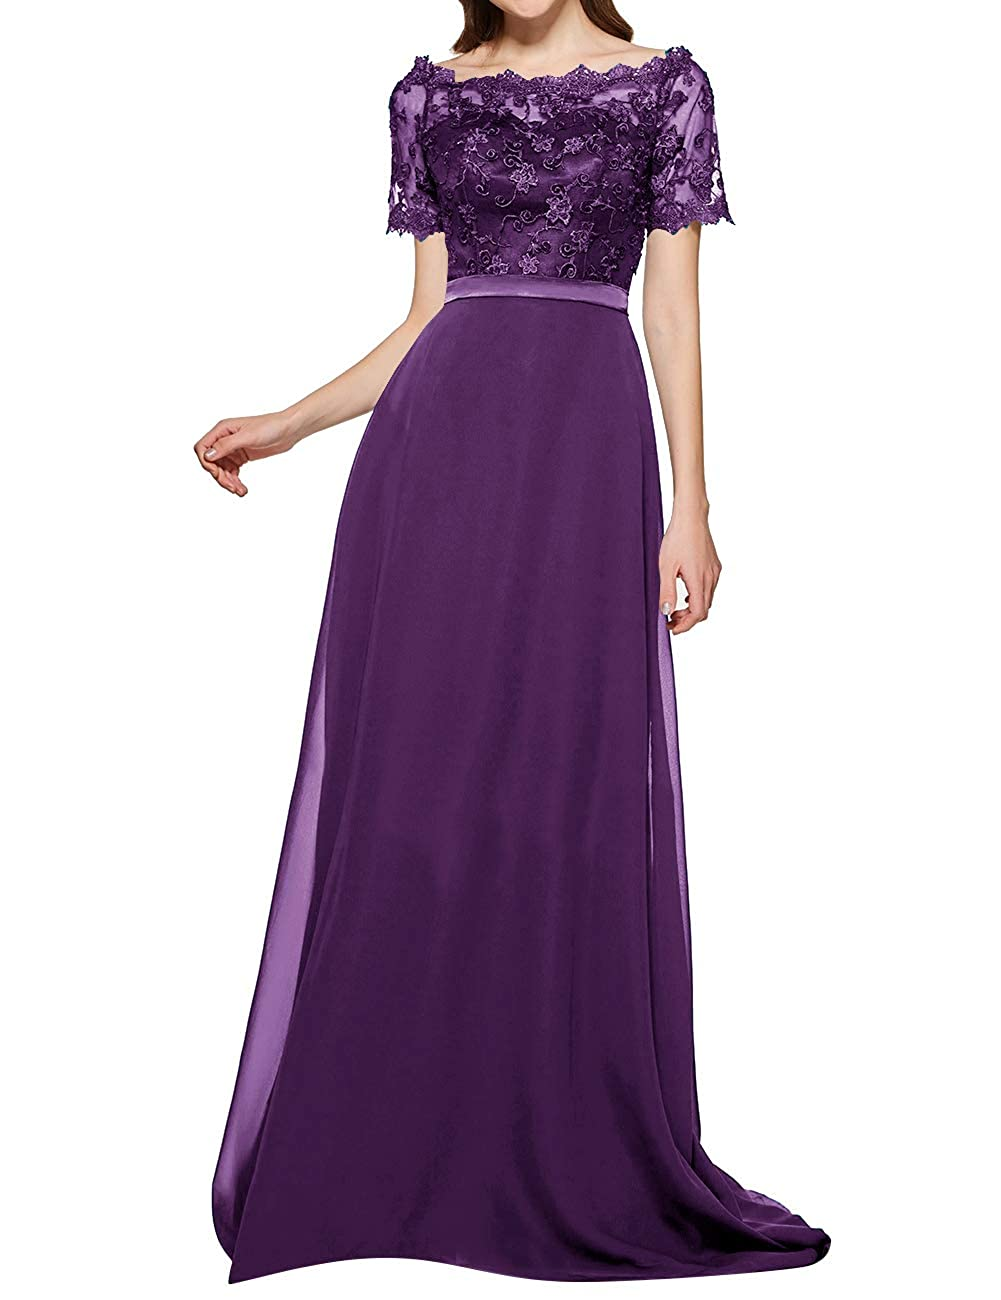 Dark Purple Uther Long Bridesmaid Dresses Short Lace Sleeve Evening Wedding Party Gowns